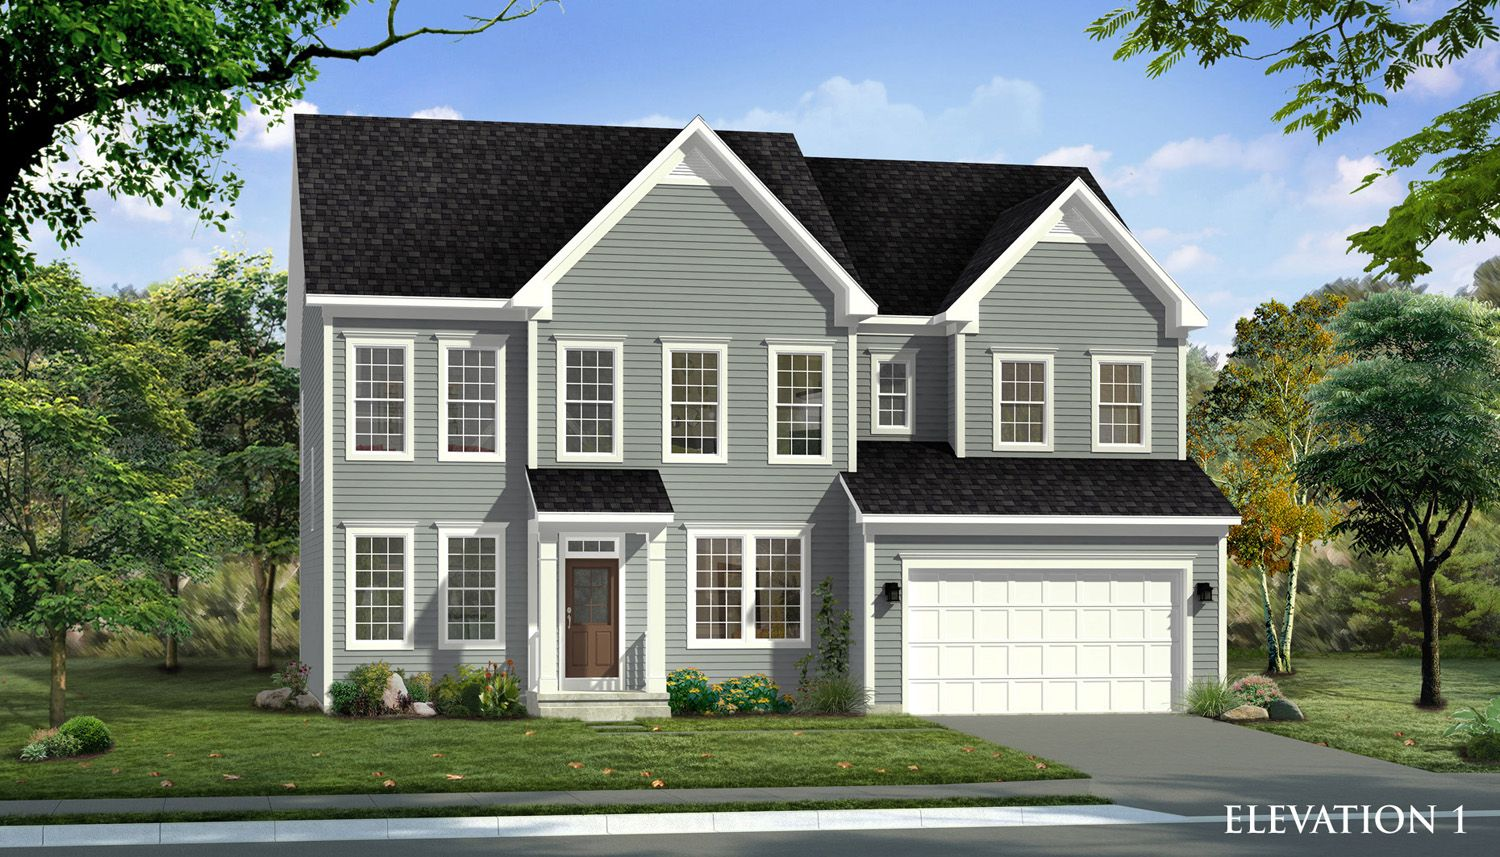 Unifamiliar por un Venta en Glenn Dale Crossing Single Family Homes - Emory Ii 7771 Hubble Drive Lanham, Maryland 20706 United States